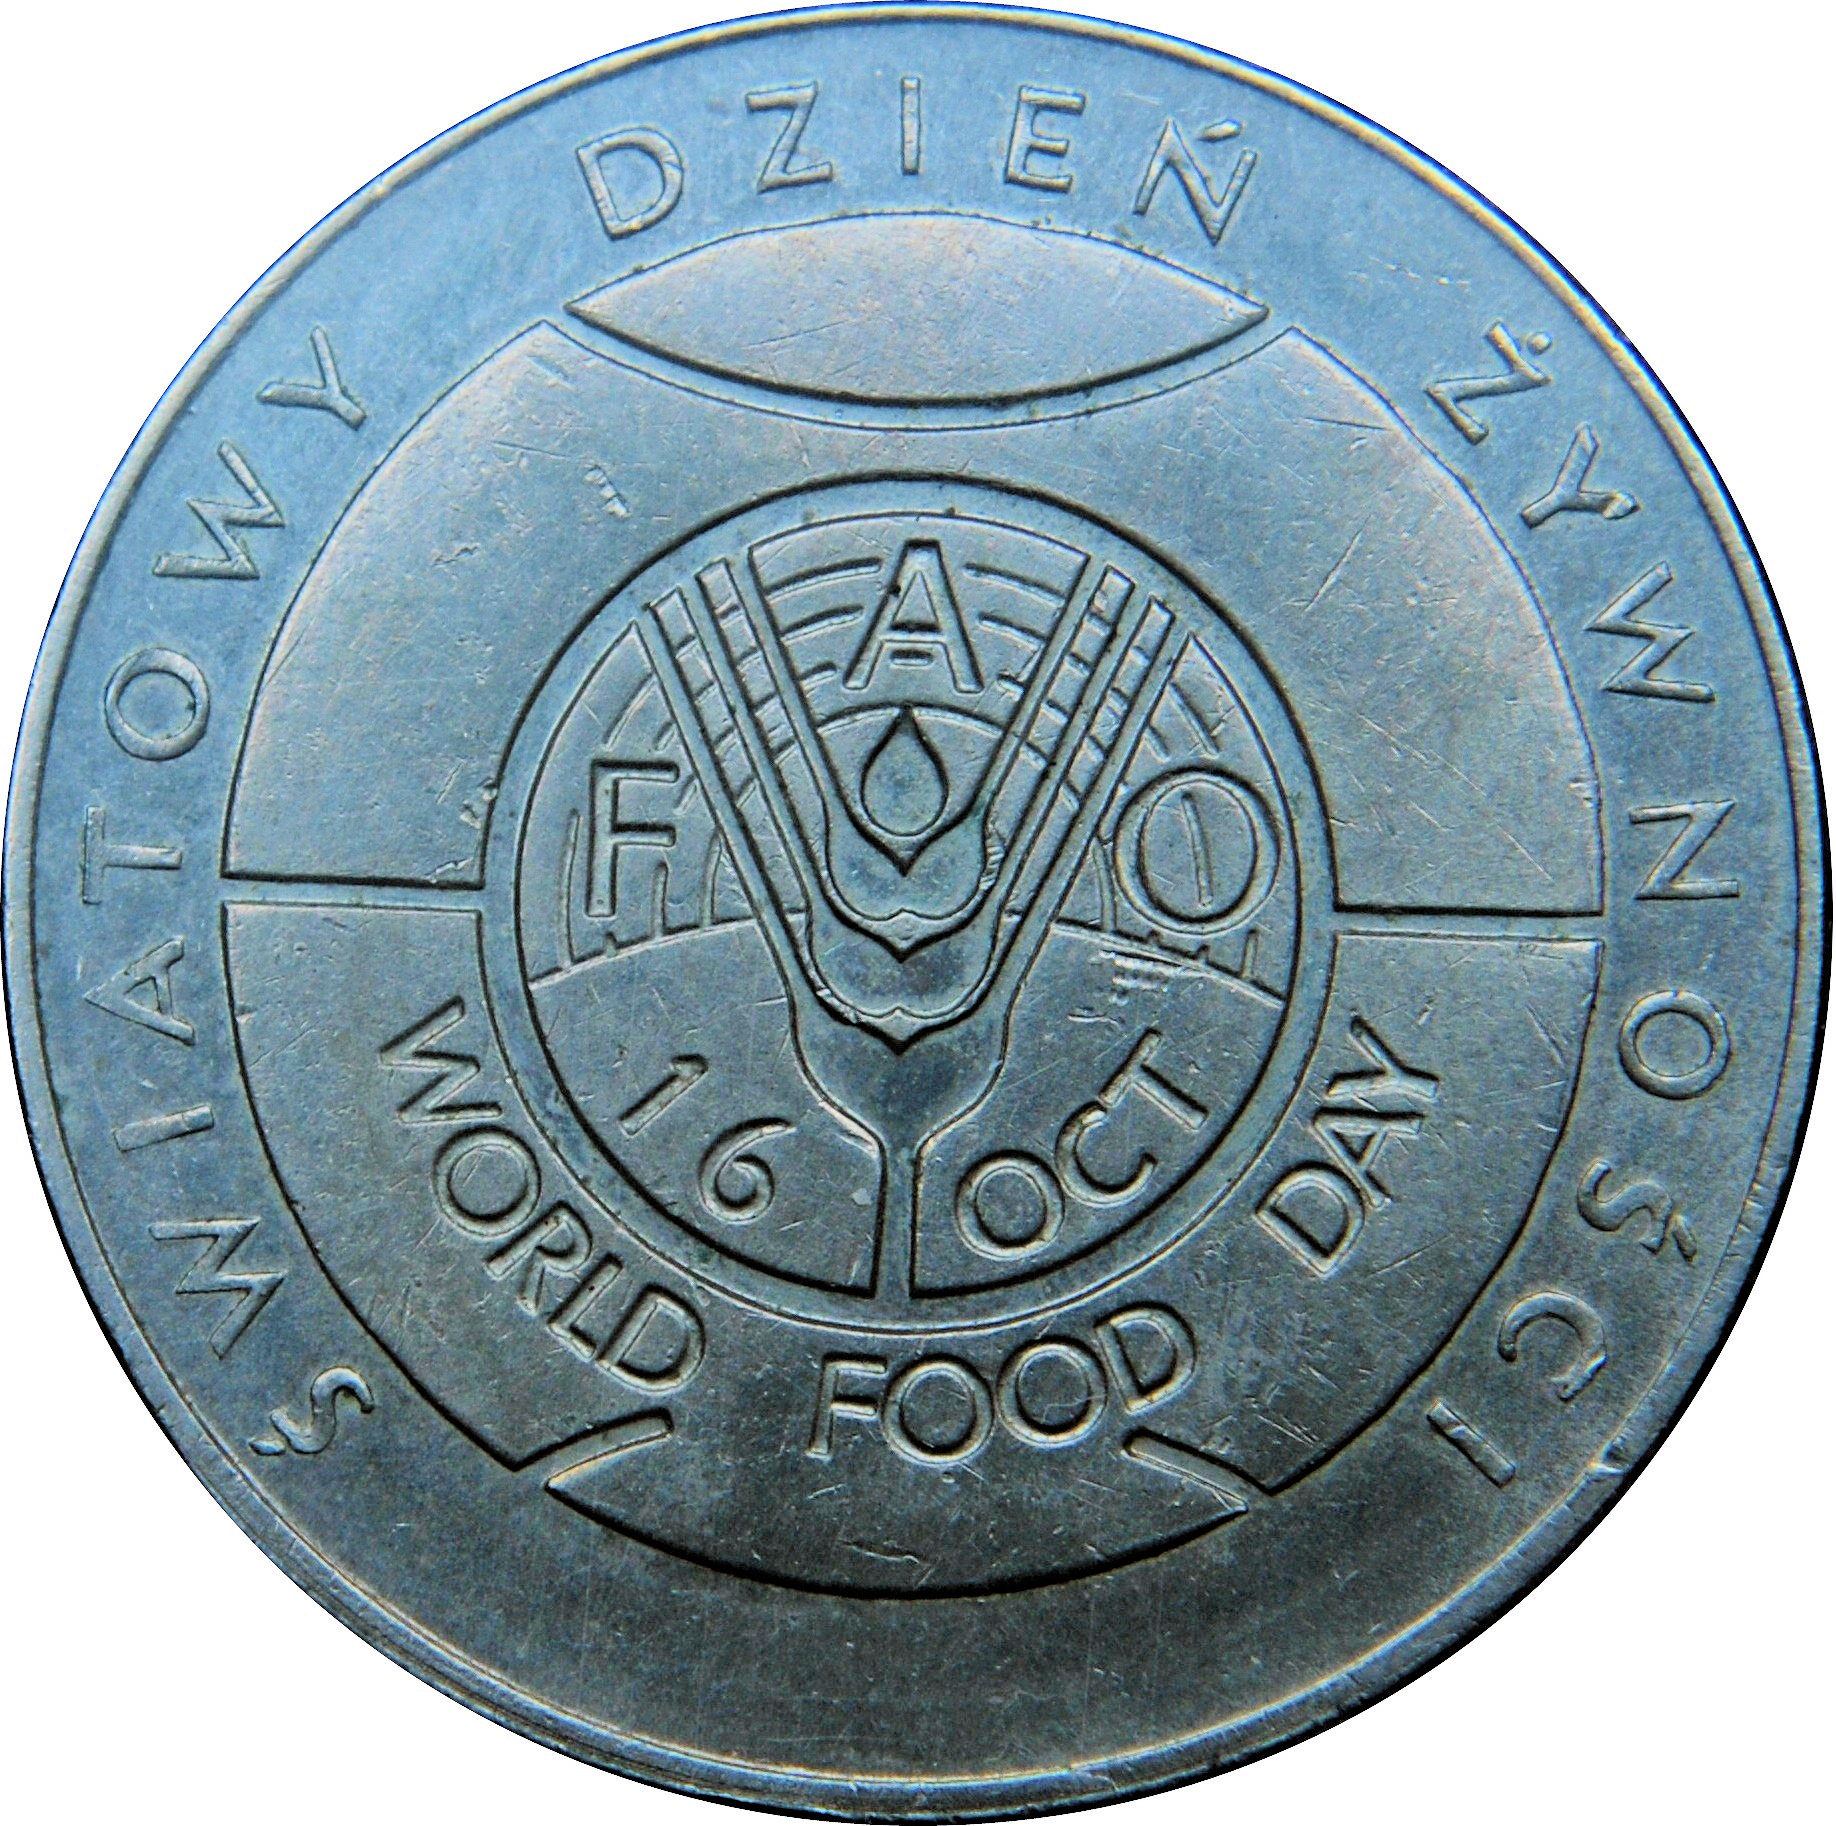 Poland 50 Zlotych Zl 1981 FAO Food for All Commemorative coin UNC